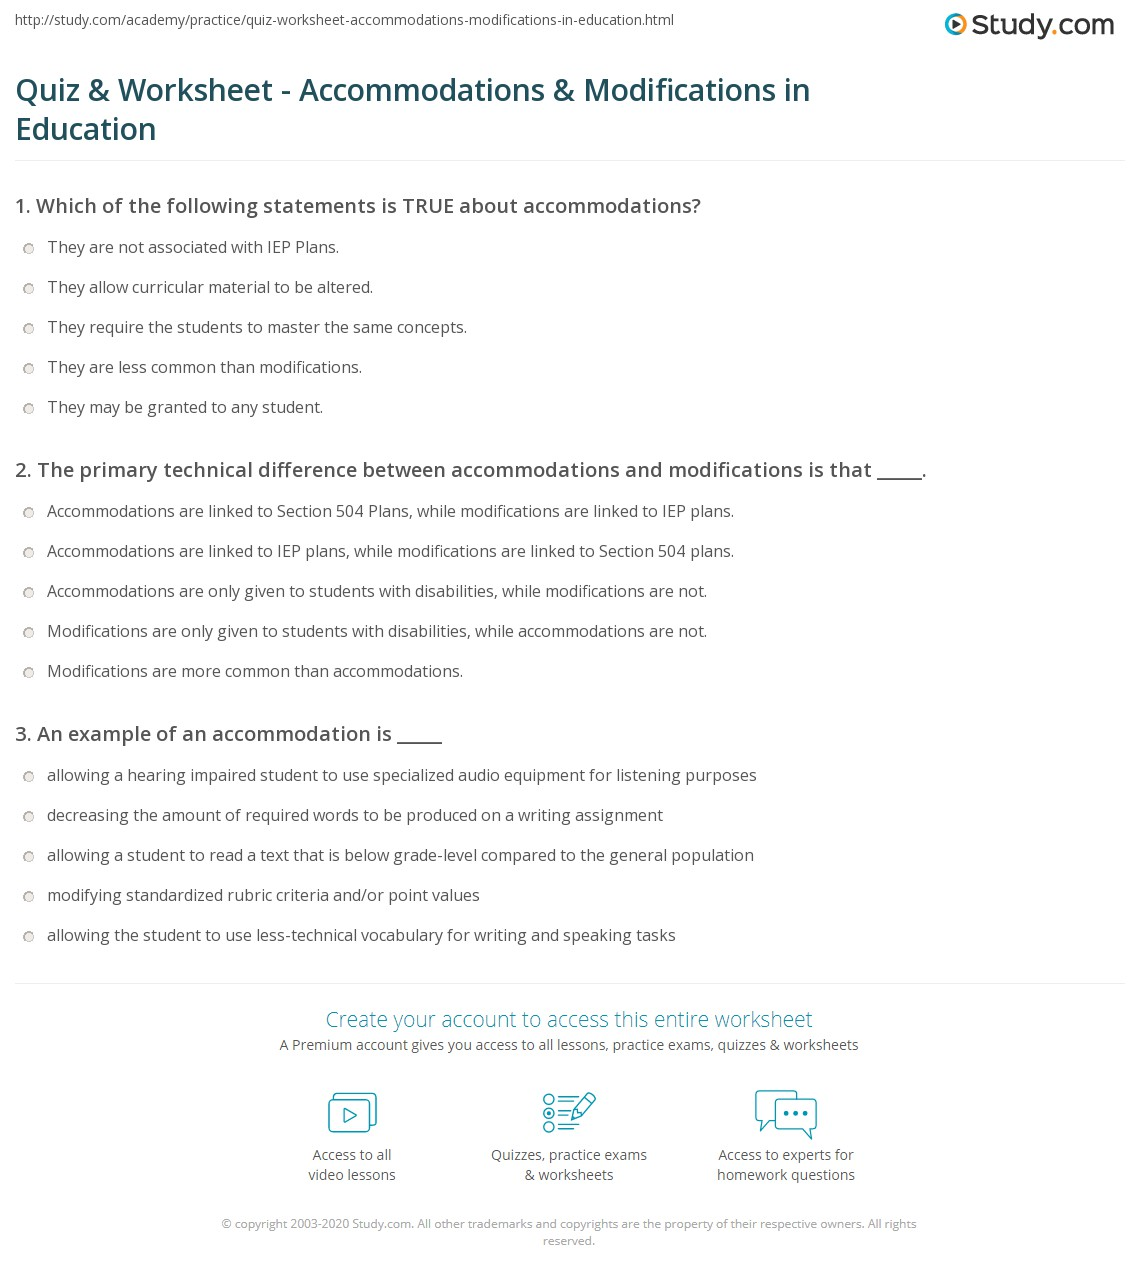 Quiz & Worksheet - Accommodations & Modifications in Education ...